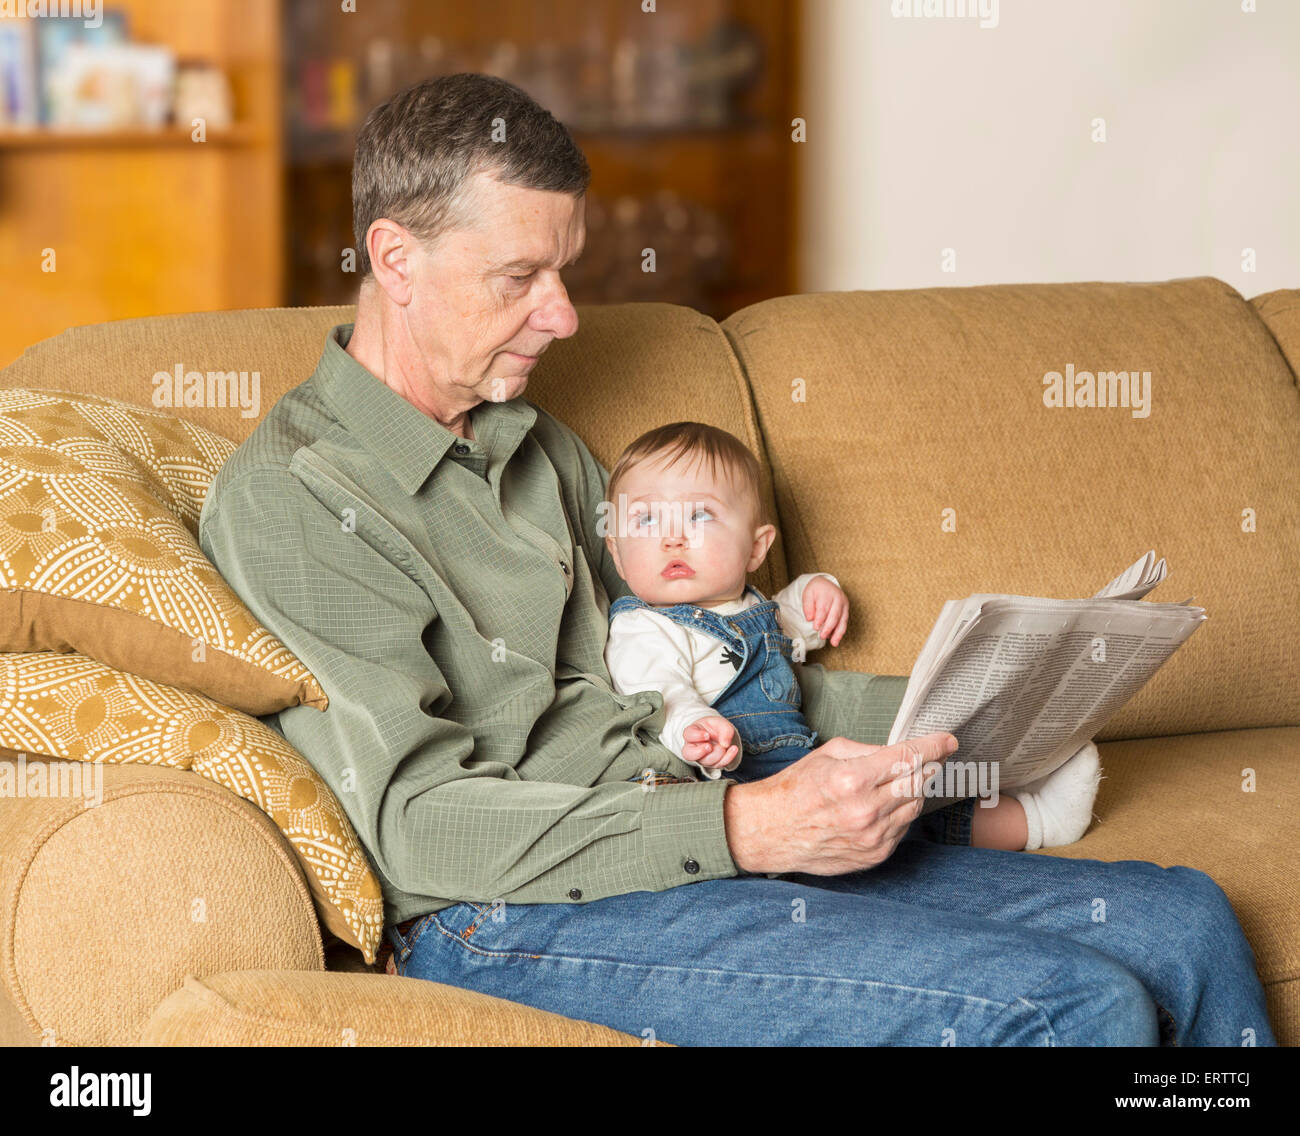 Baby girl and grandfather reading newspaper on settee in family living room - Stock Image